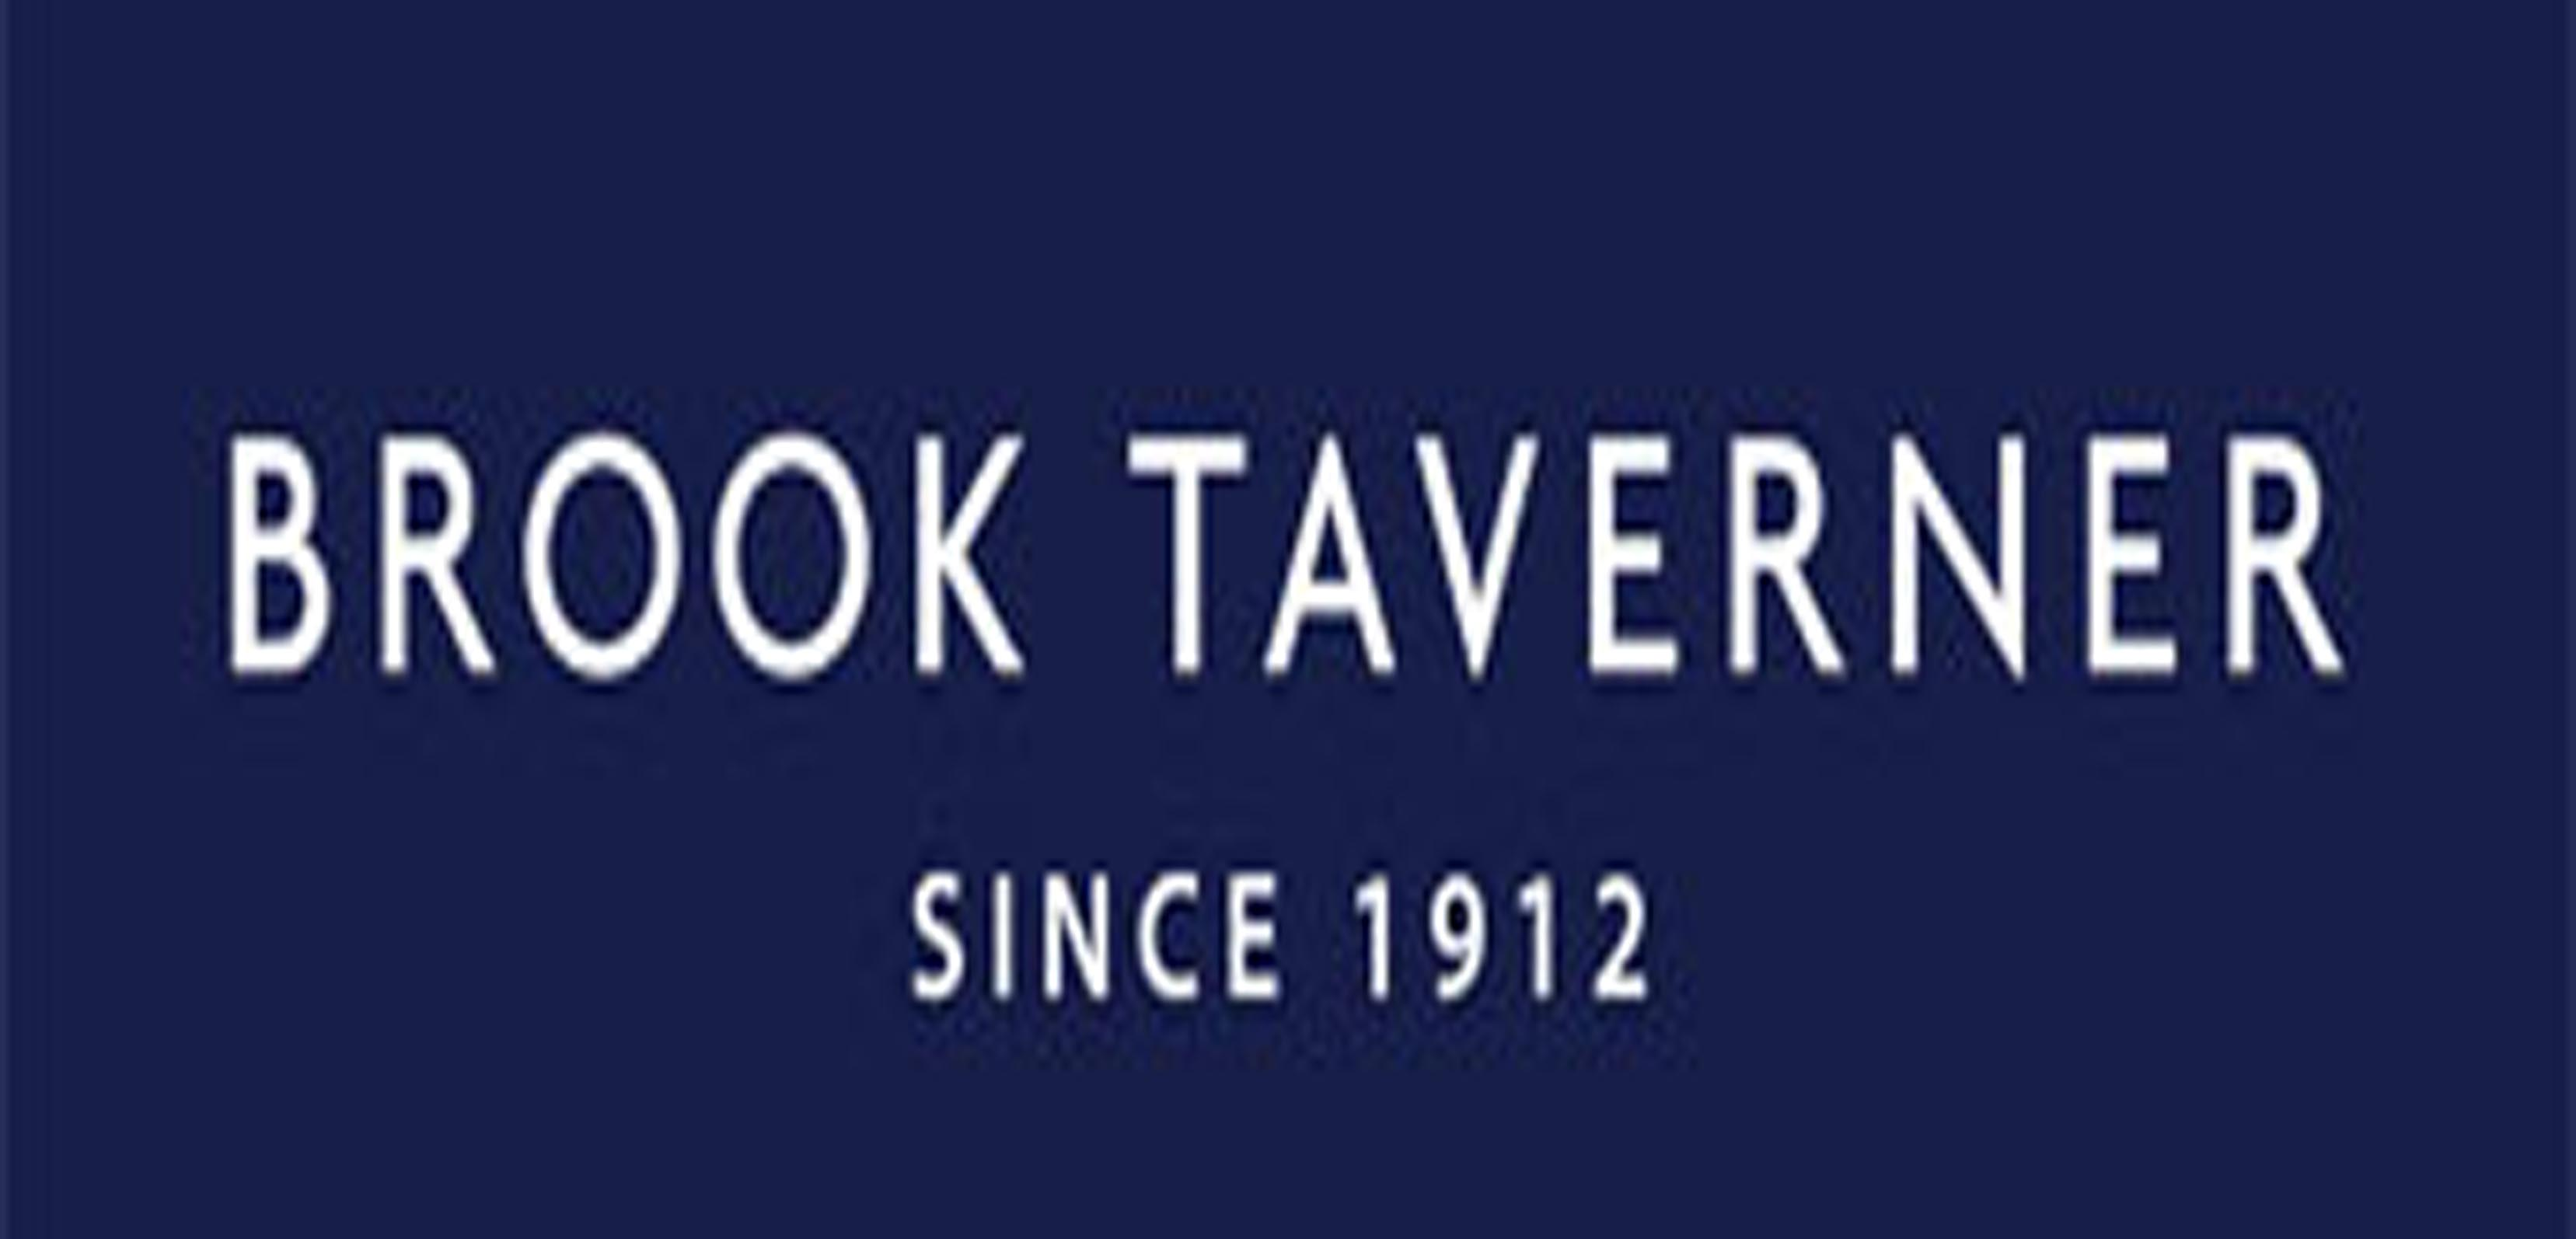 Brook Taverner Corporate wear